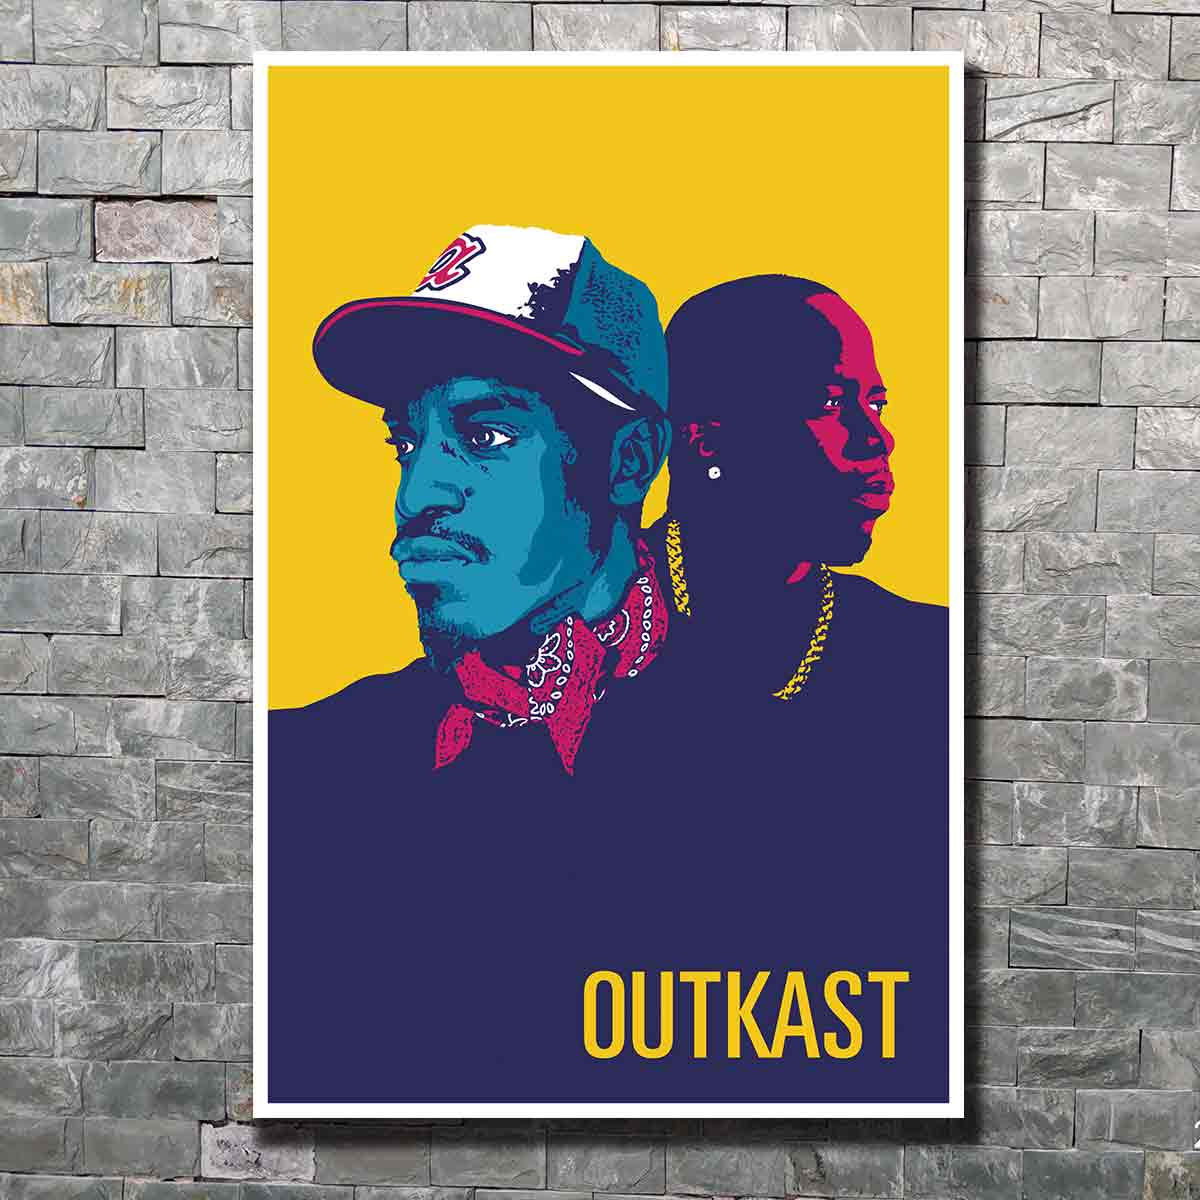 Art Posters Wall Canvas Outkast Stankonia Hip Hop Album Music Rap Singer Print Modern painting Decor 14x21 12x18 24x36 27x40 image